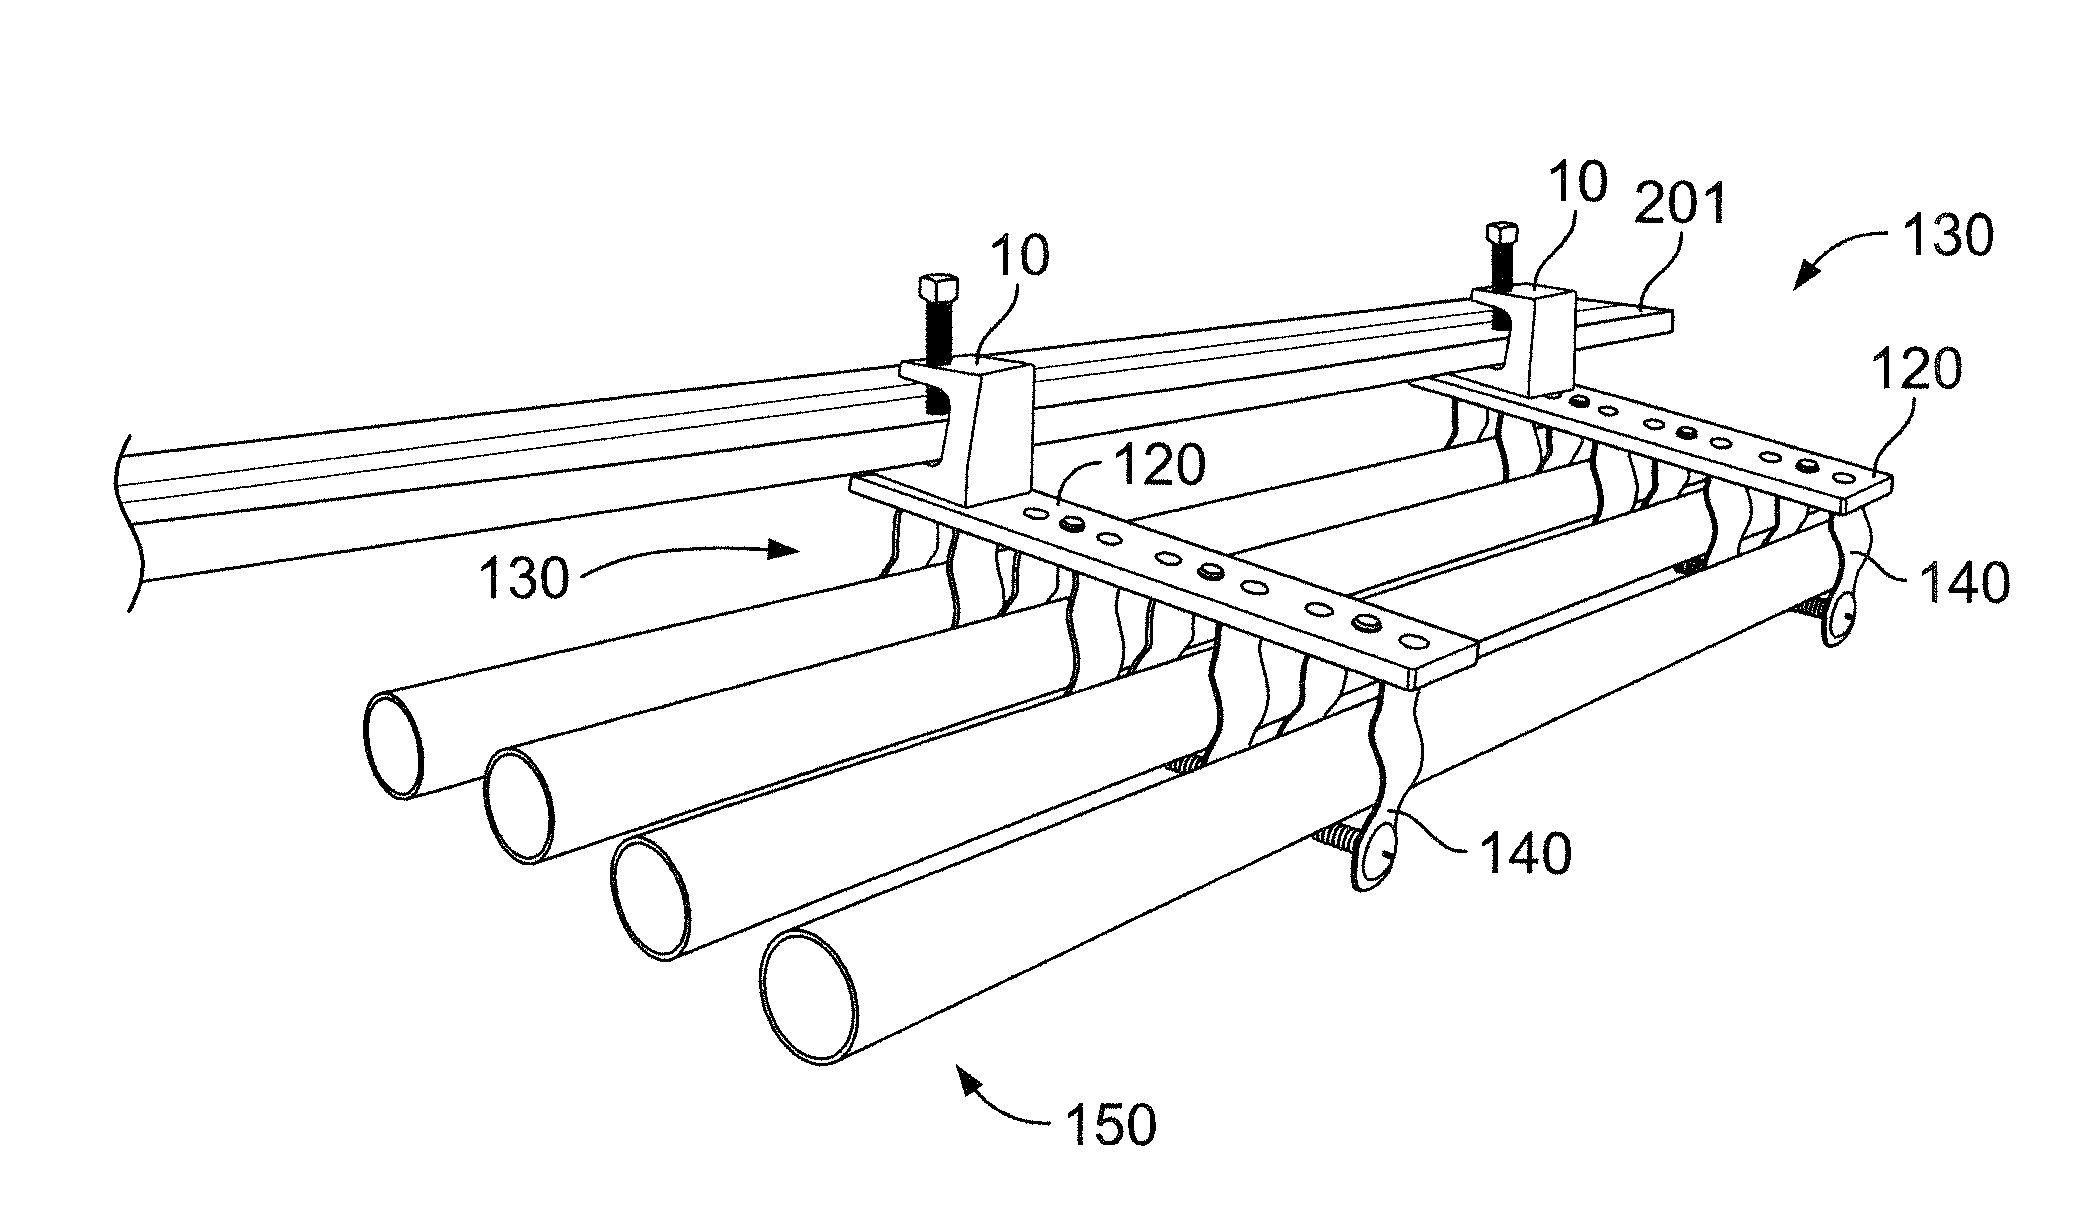 patent us20130320157 - utility conduit supporting device  system  and method